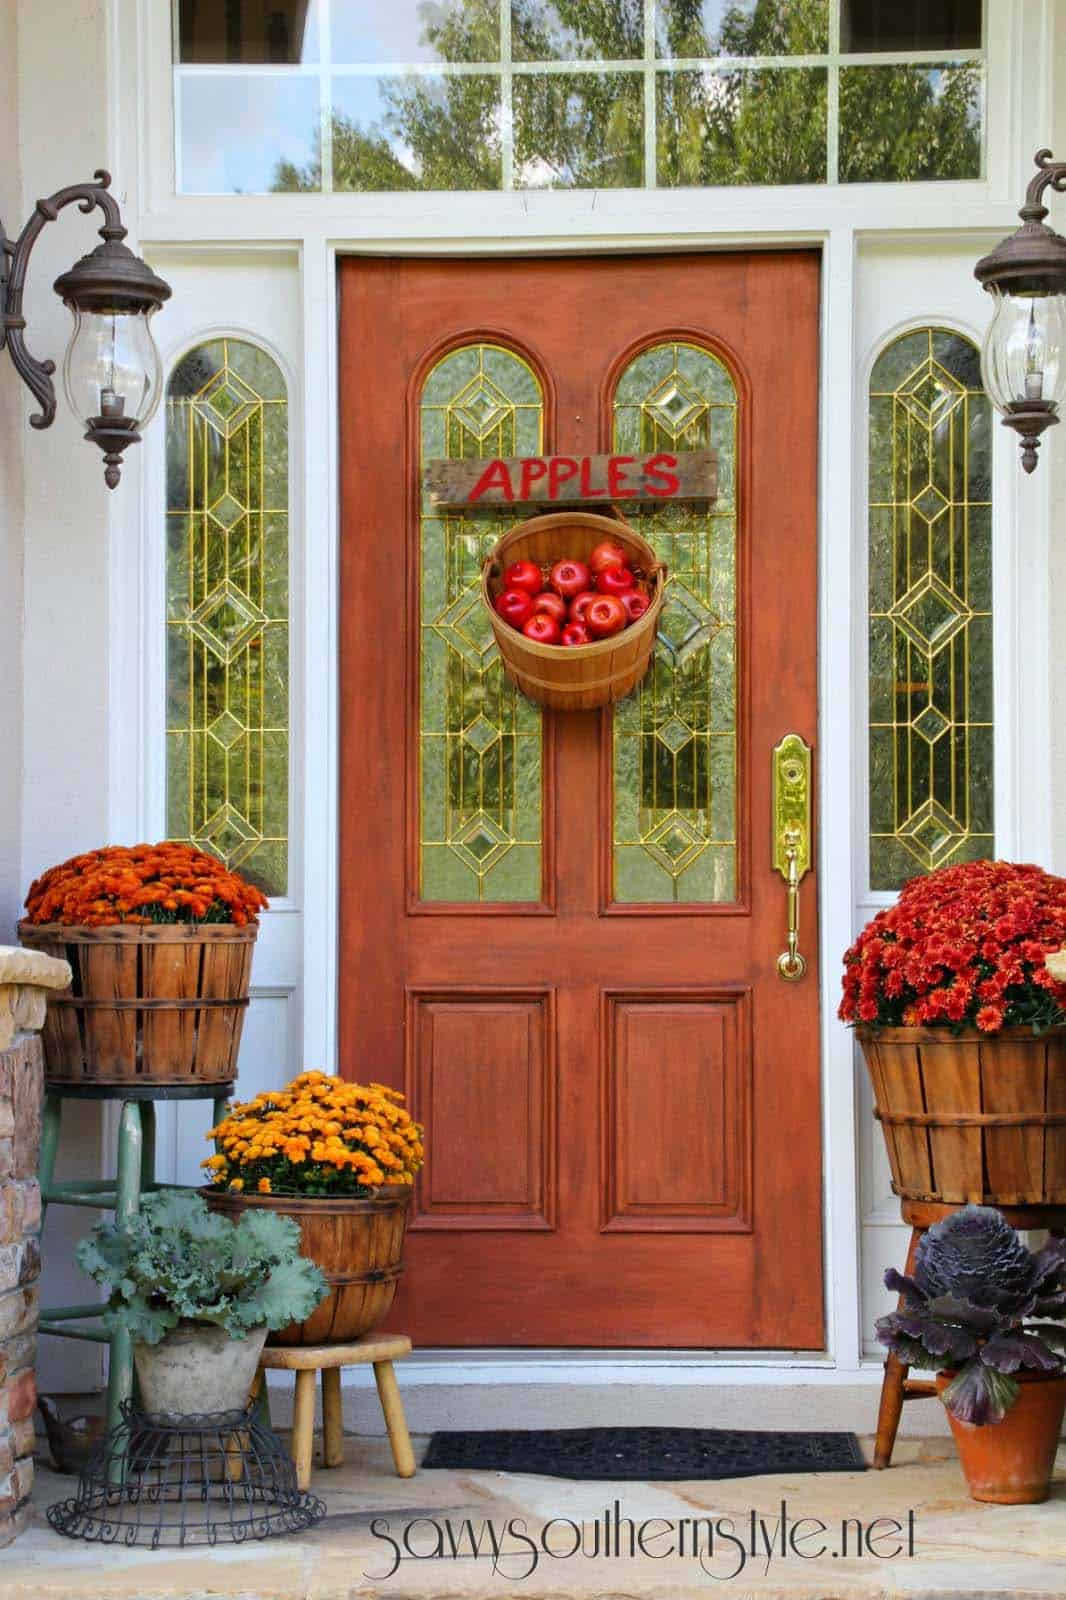 40 amazing ways to decorate your front door with fall style Small front porch decorating ideas for fall